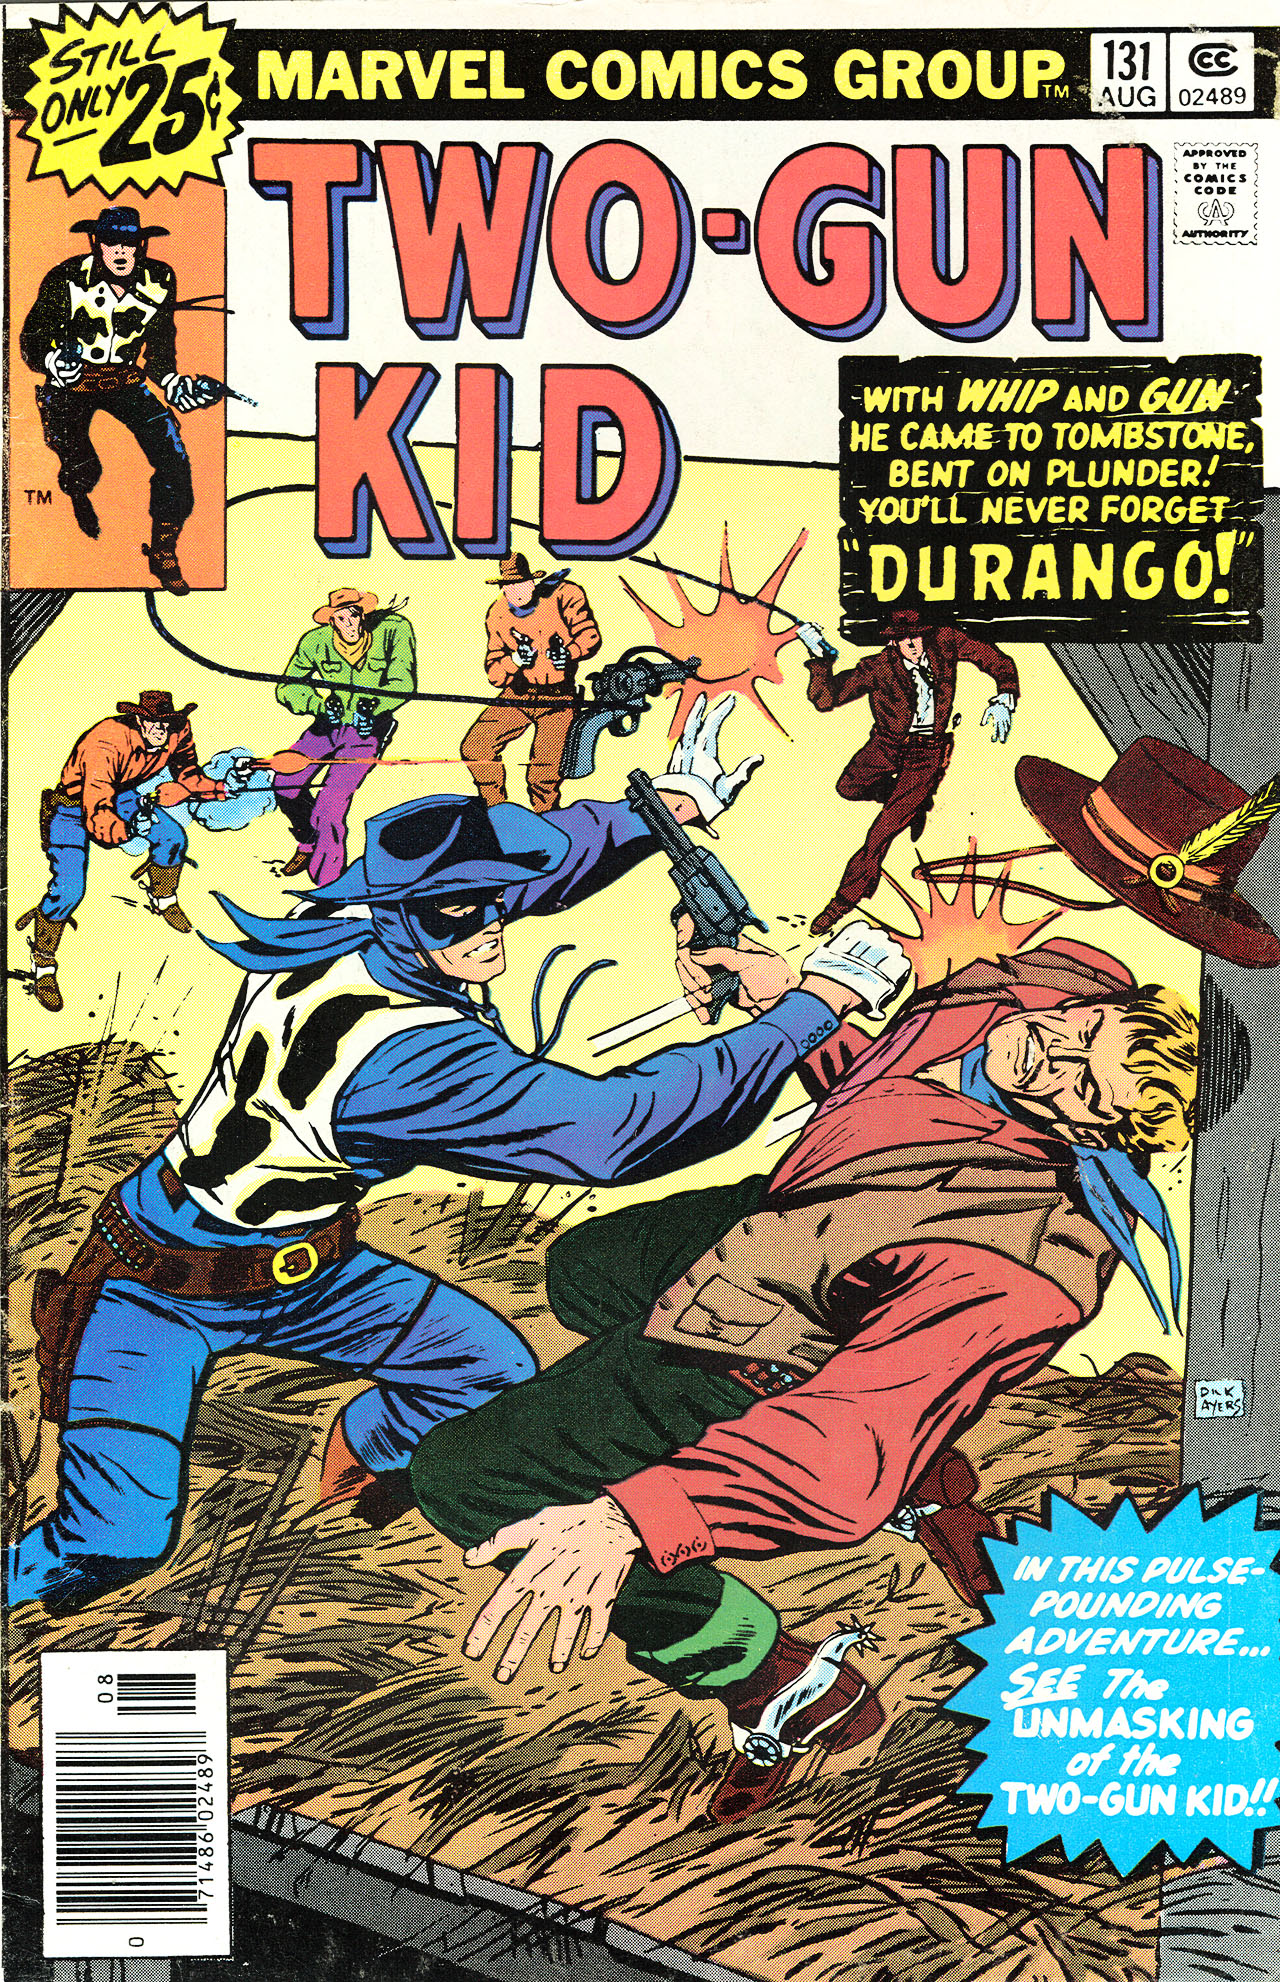 Read online Two-Gun Kid comic -  Issue #131 - 1